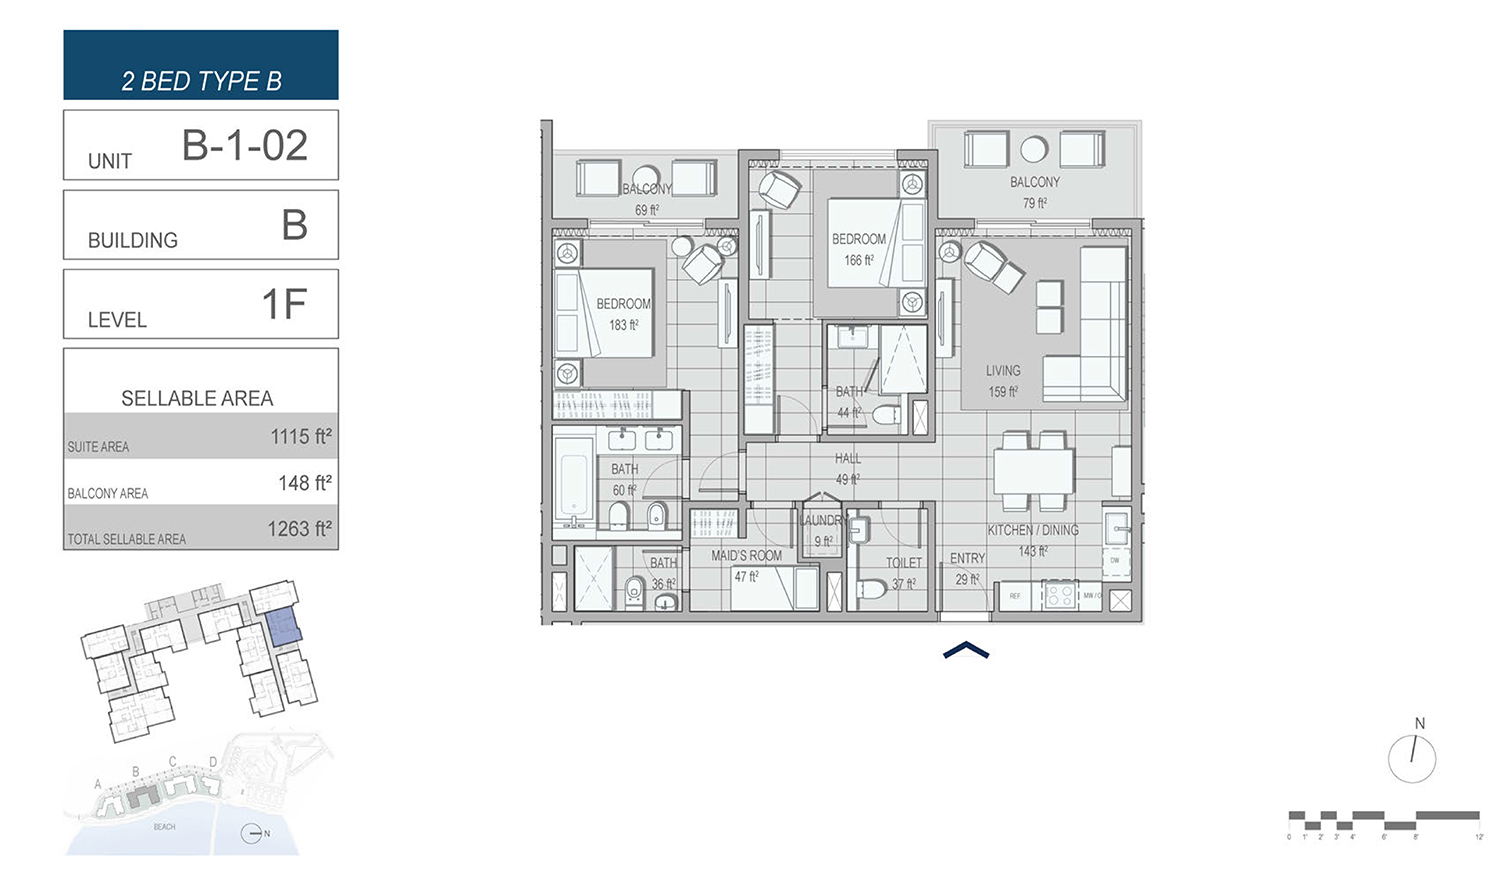 2 Bedroom Type B, Unit B-1-02, Building-B, Level 1F, Size 1263 sq.ft.